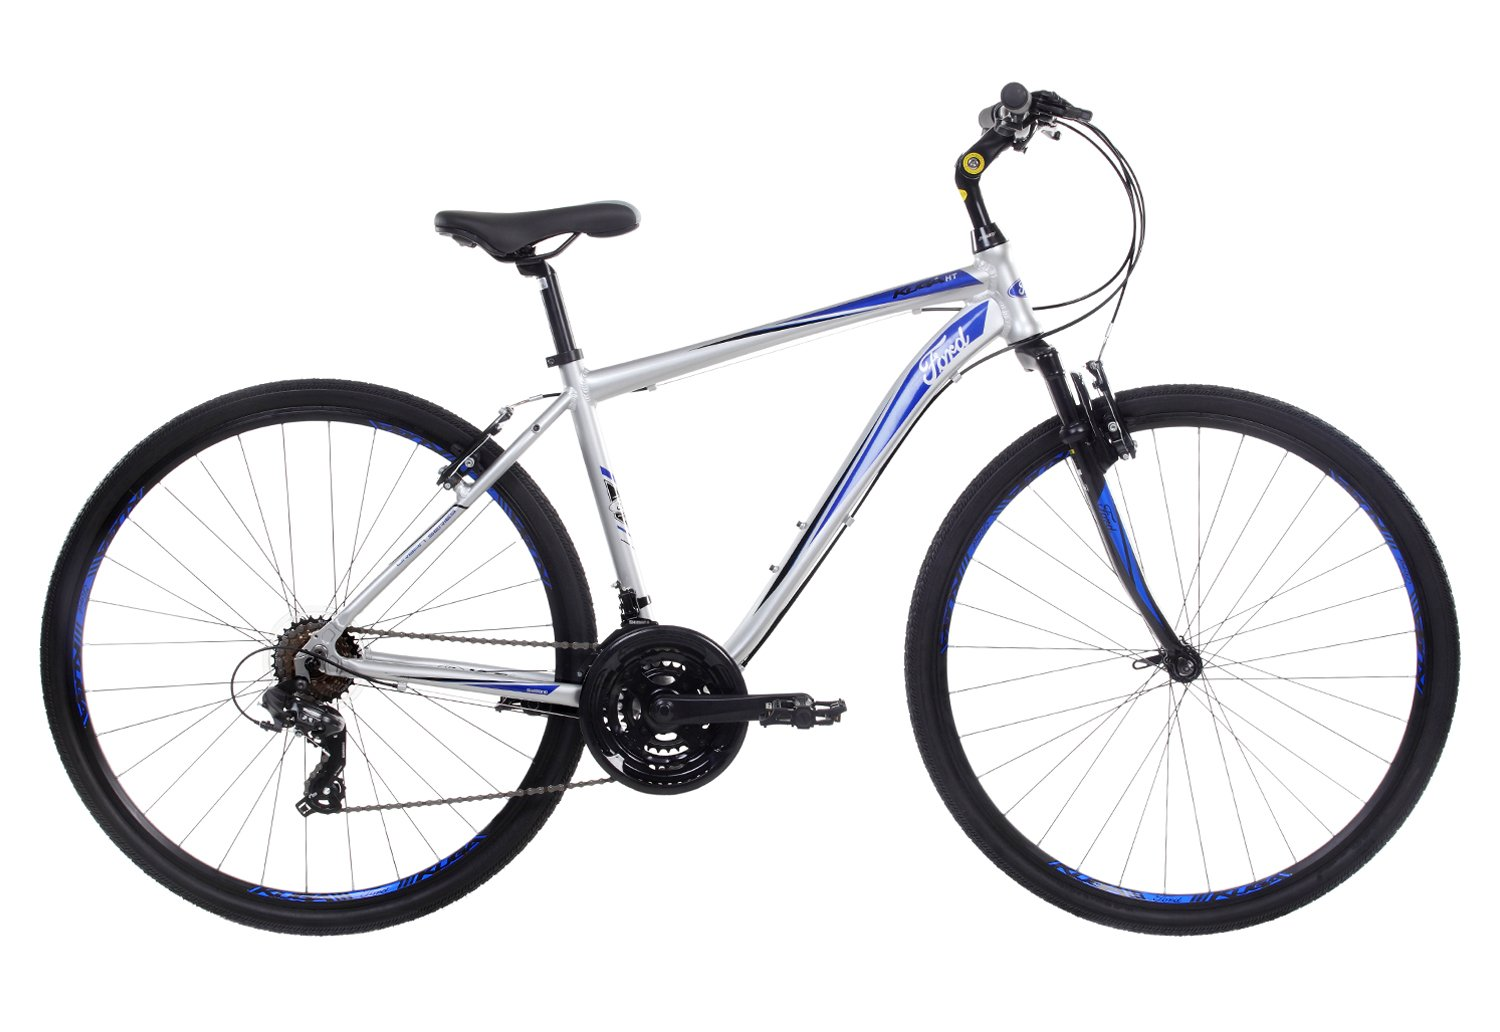 71QH4s7GyBL - Ford Men's Kuga Ht Hybrid Bicycle